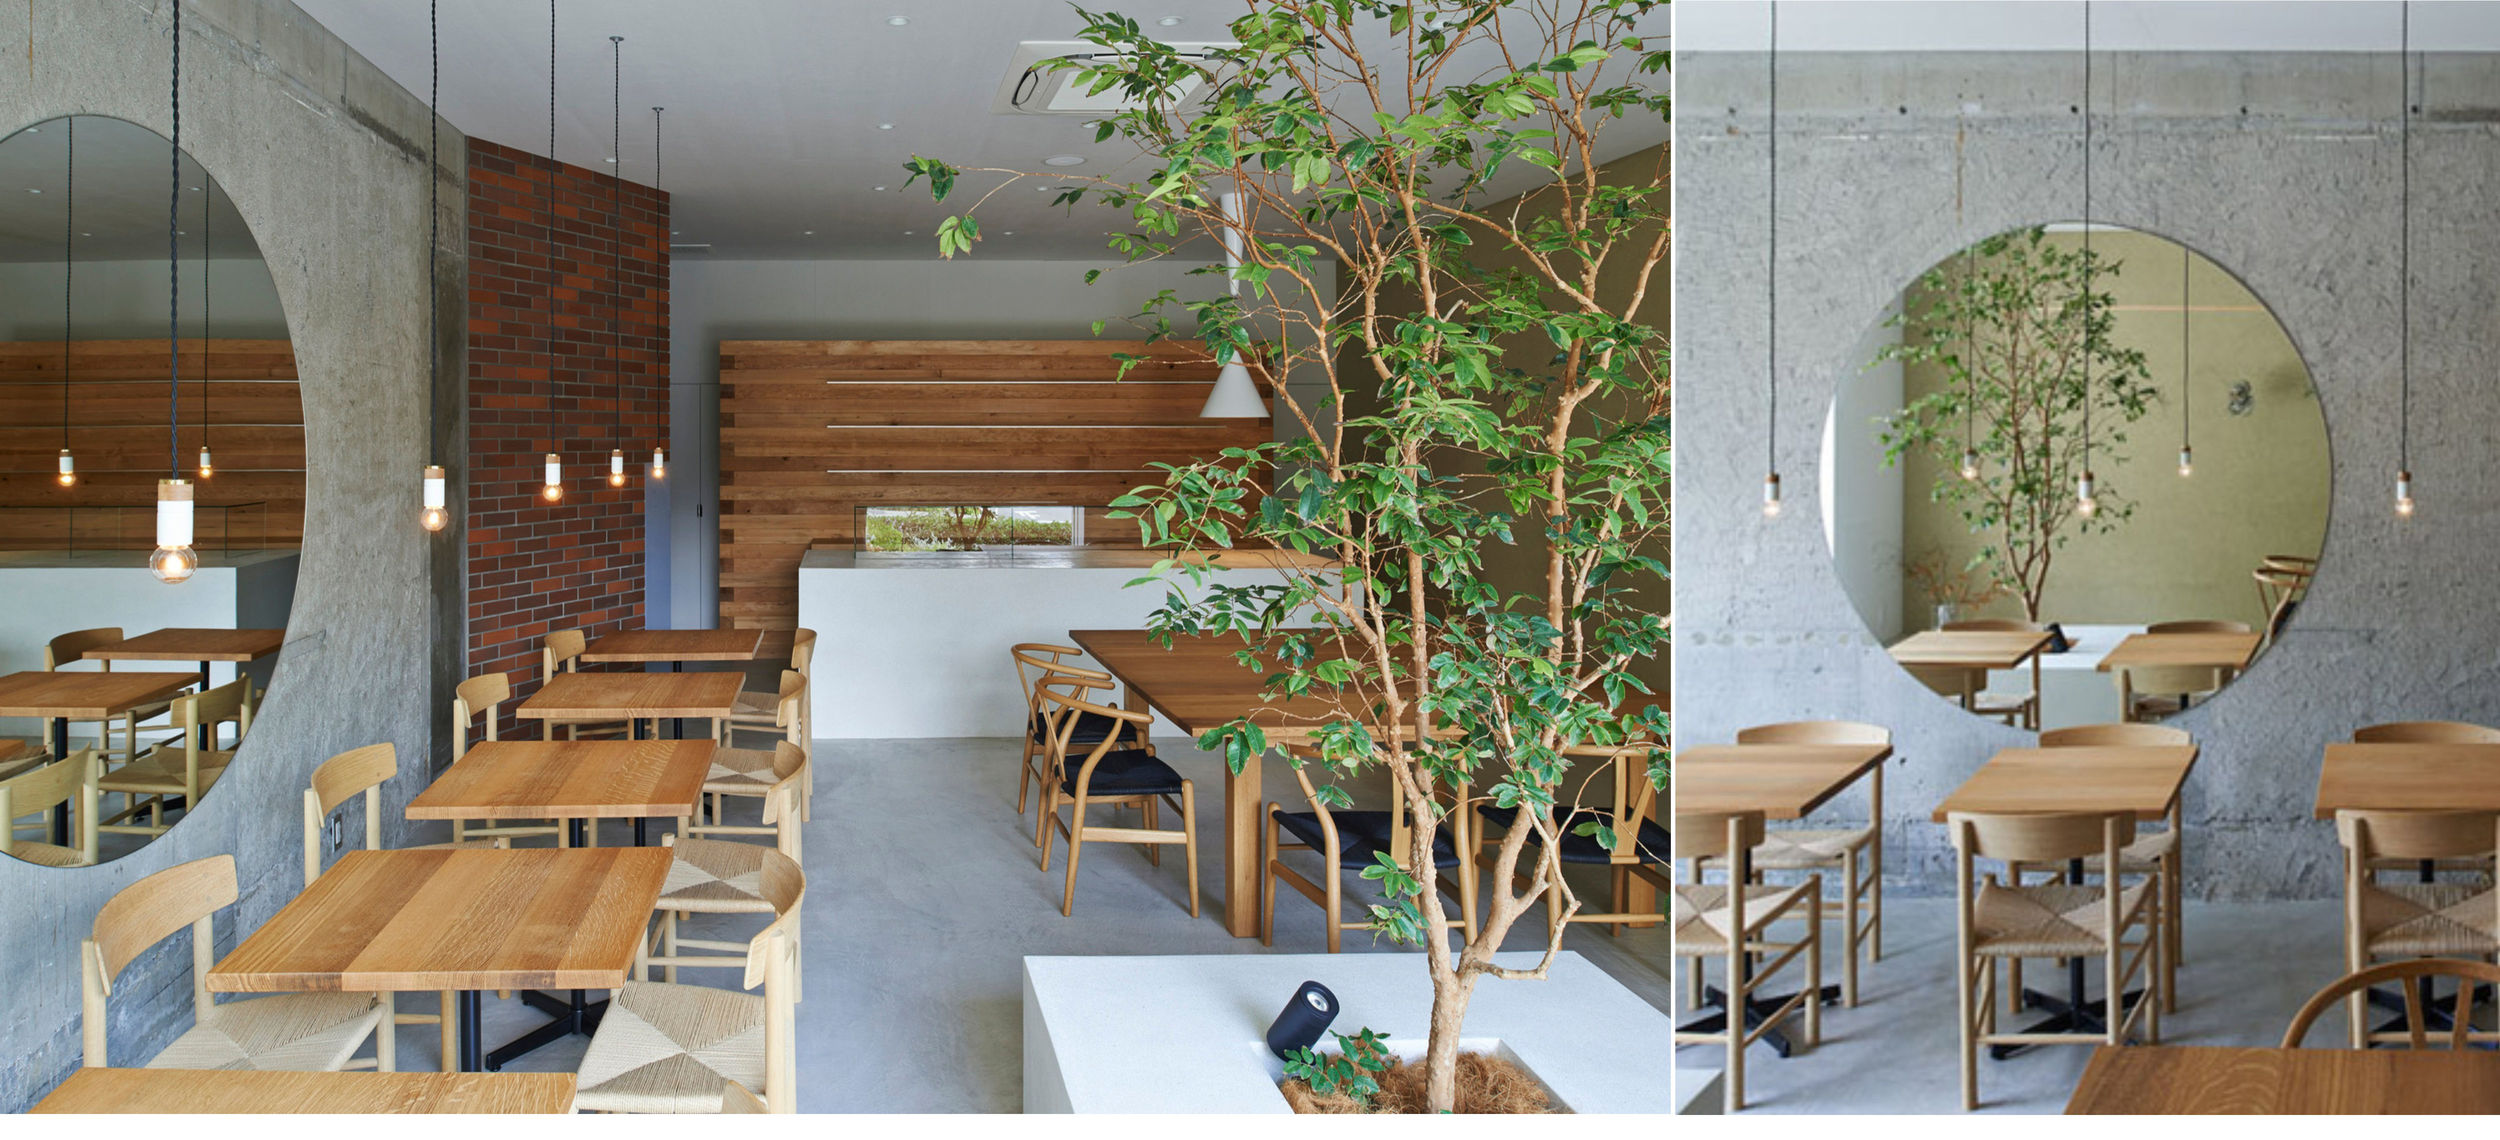 The Japanese studio  Ninkipen  has designed the interior of Ito-Biyori cafe using a variety of materials to create a simple and warm atmosphere with small trees growing inside.